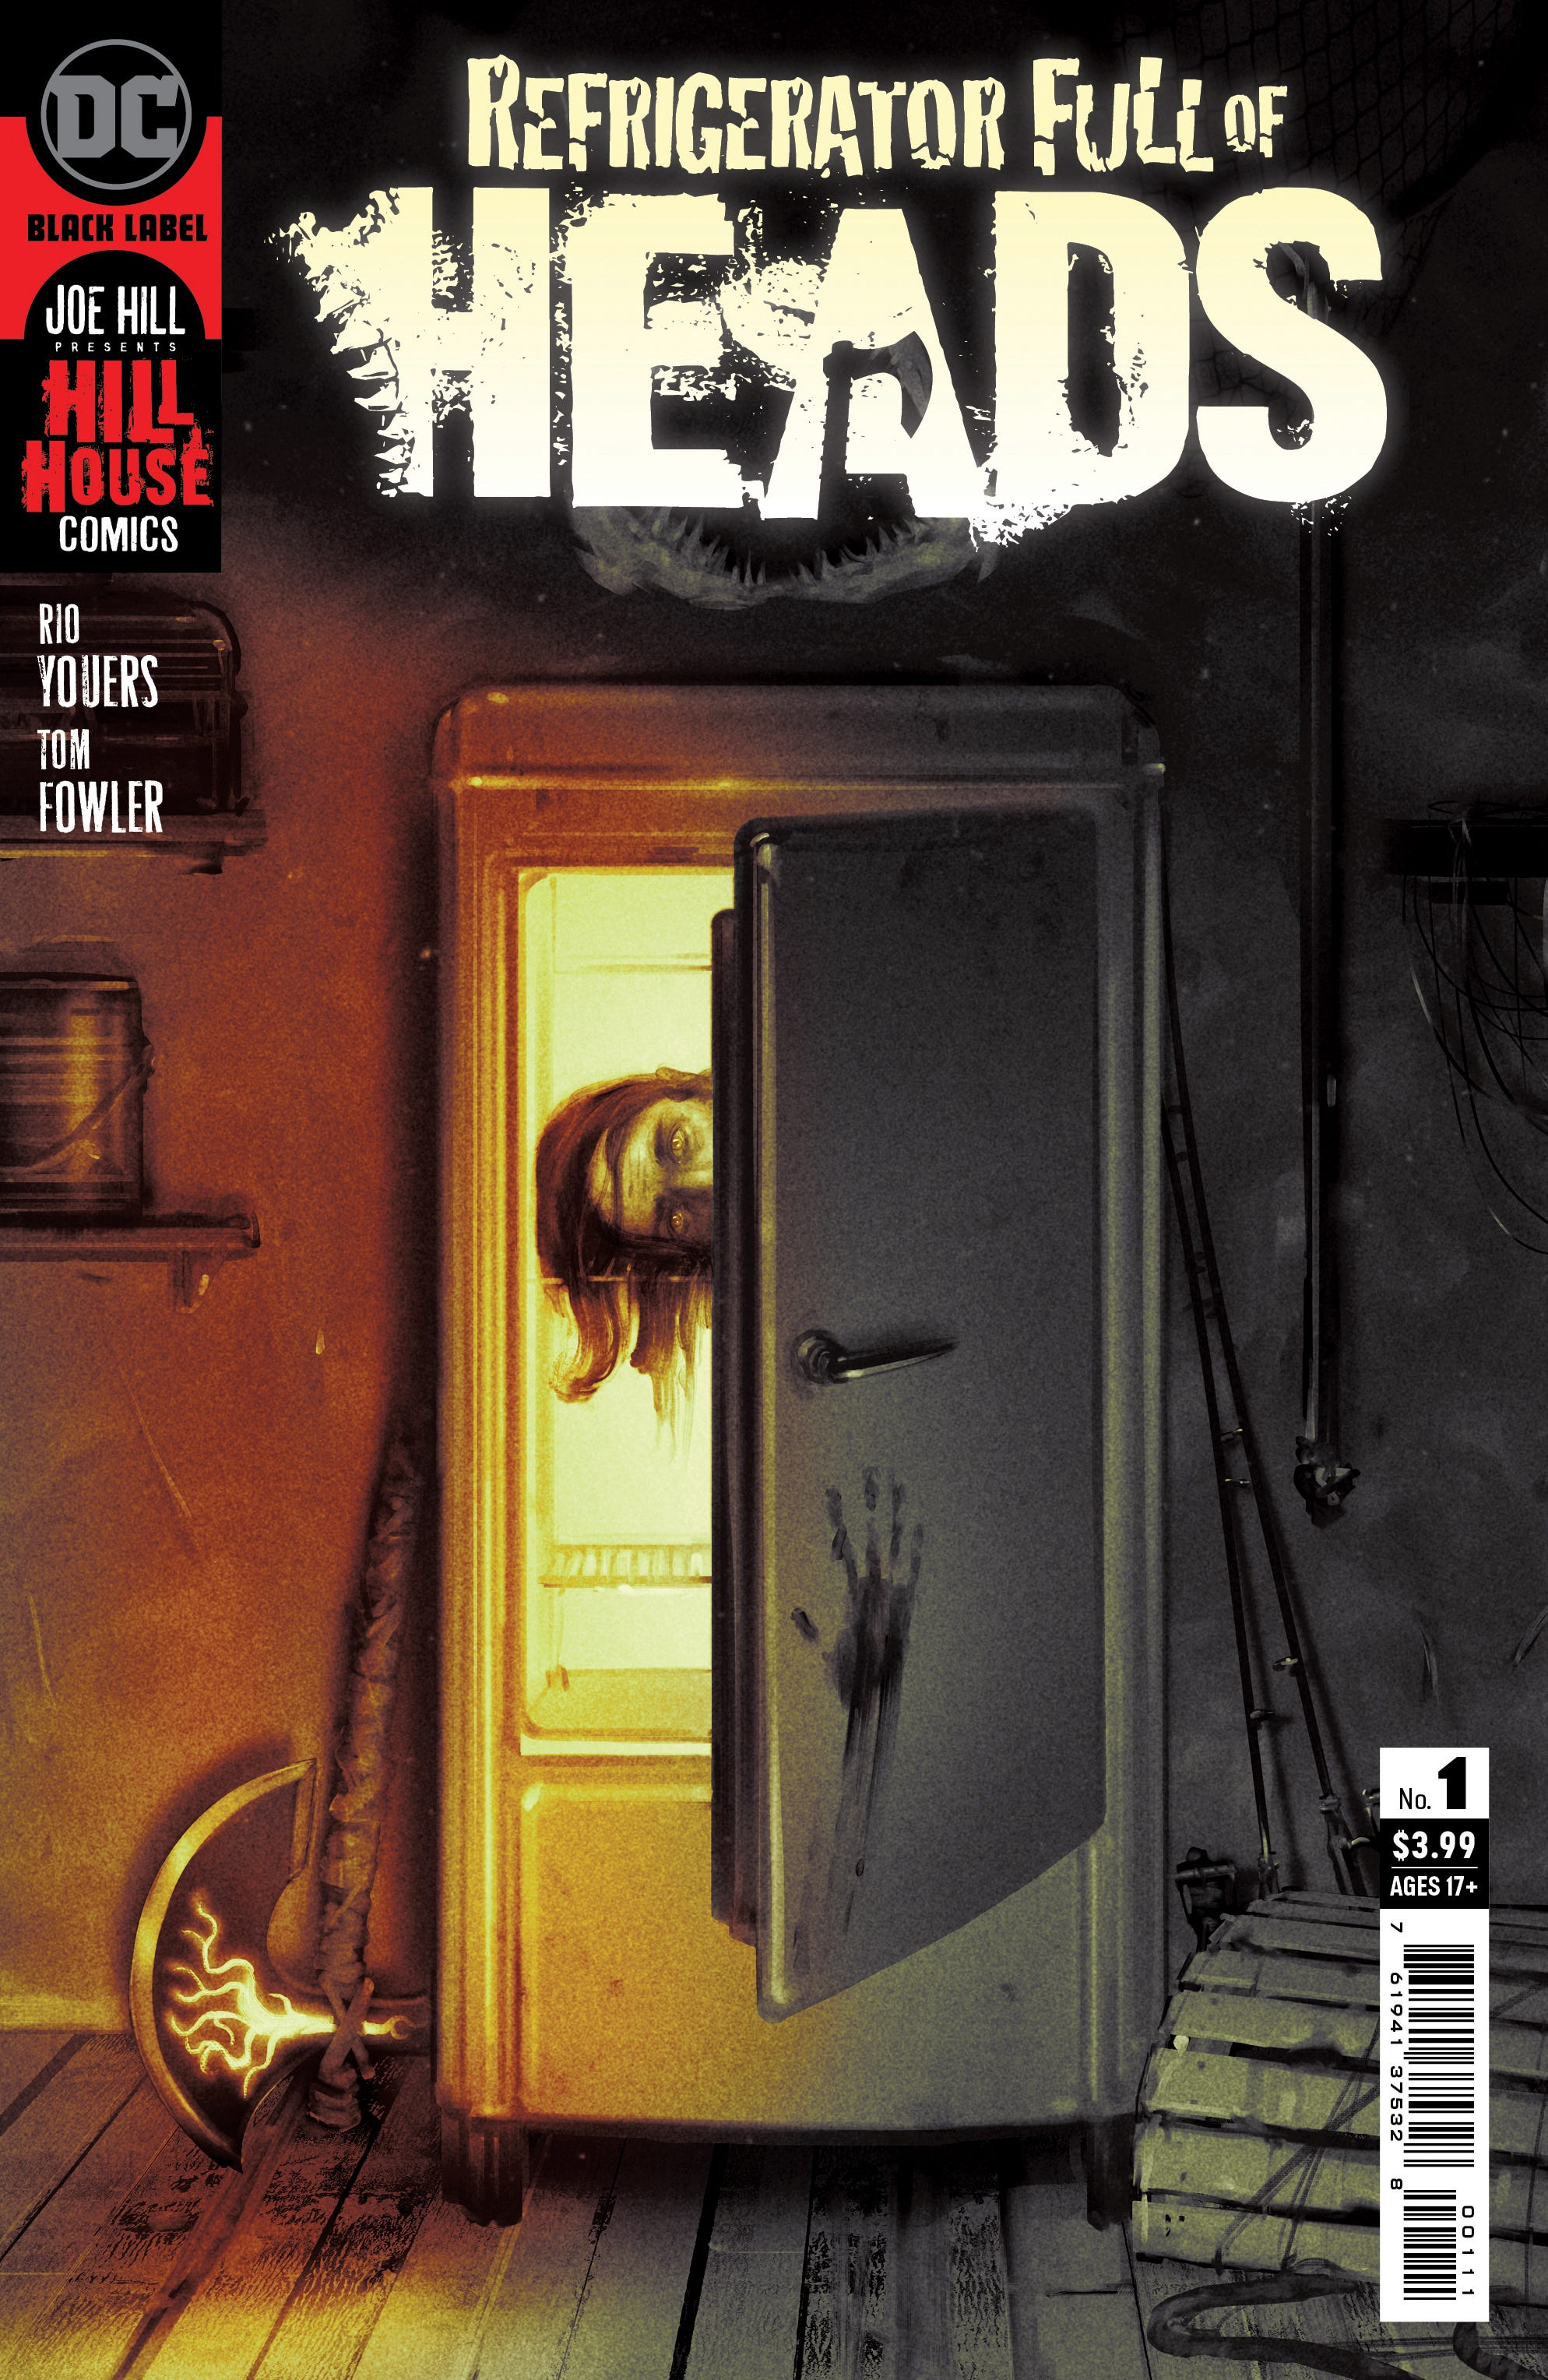 Refrigerator Full of Heads #1 (of 6) (Cover A - Sam Wolfe Connelly)